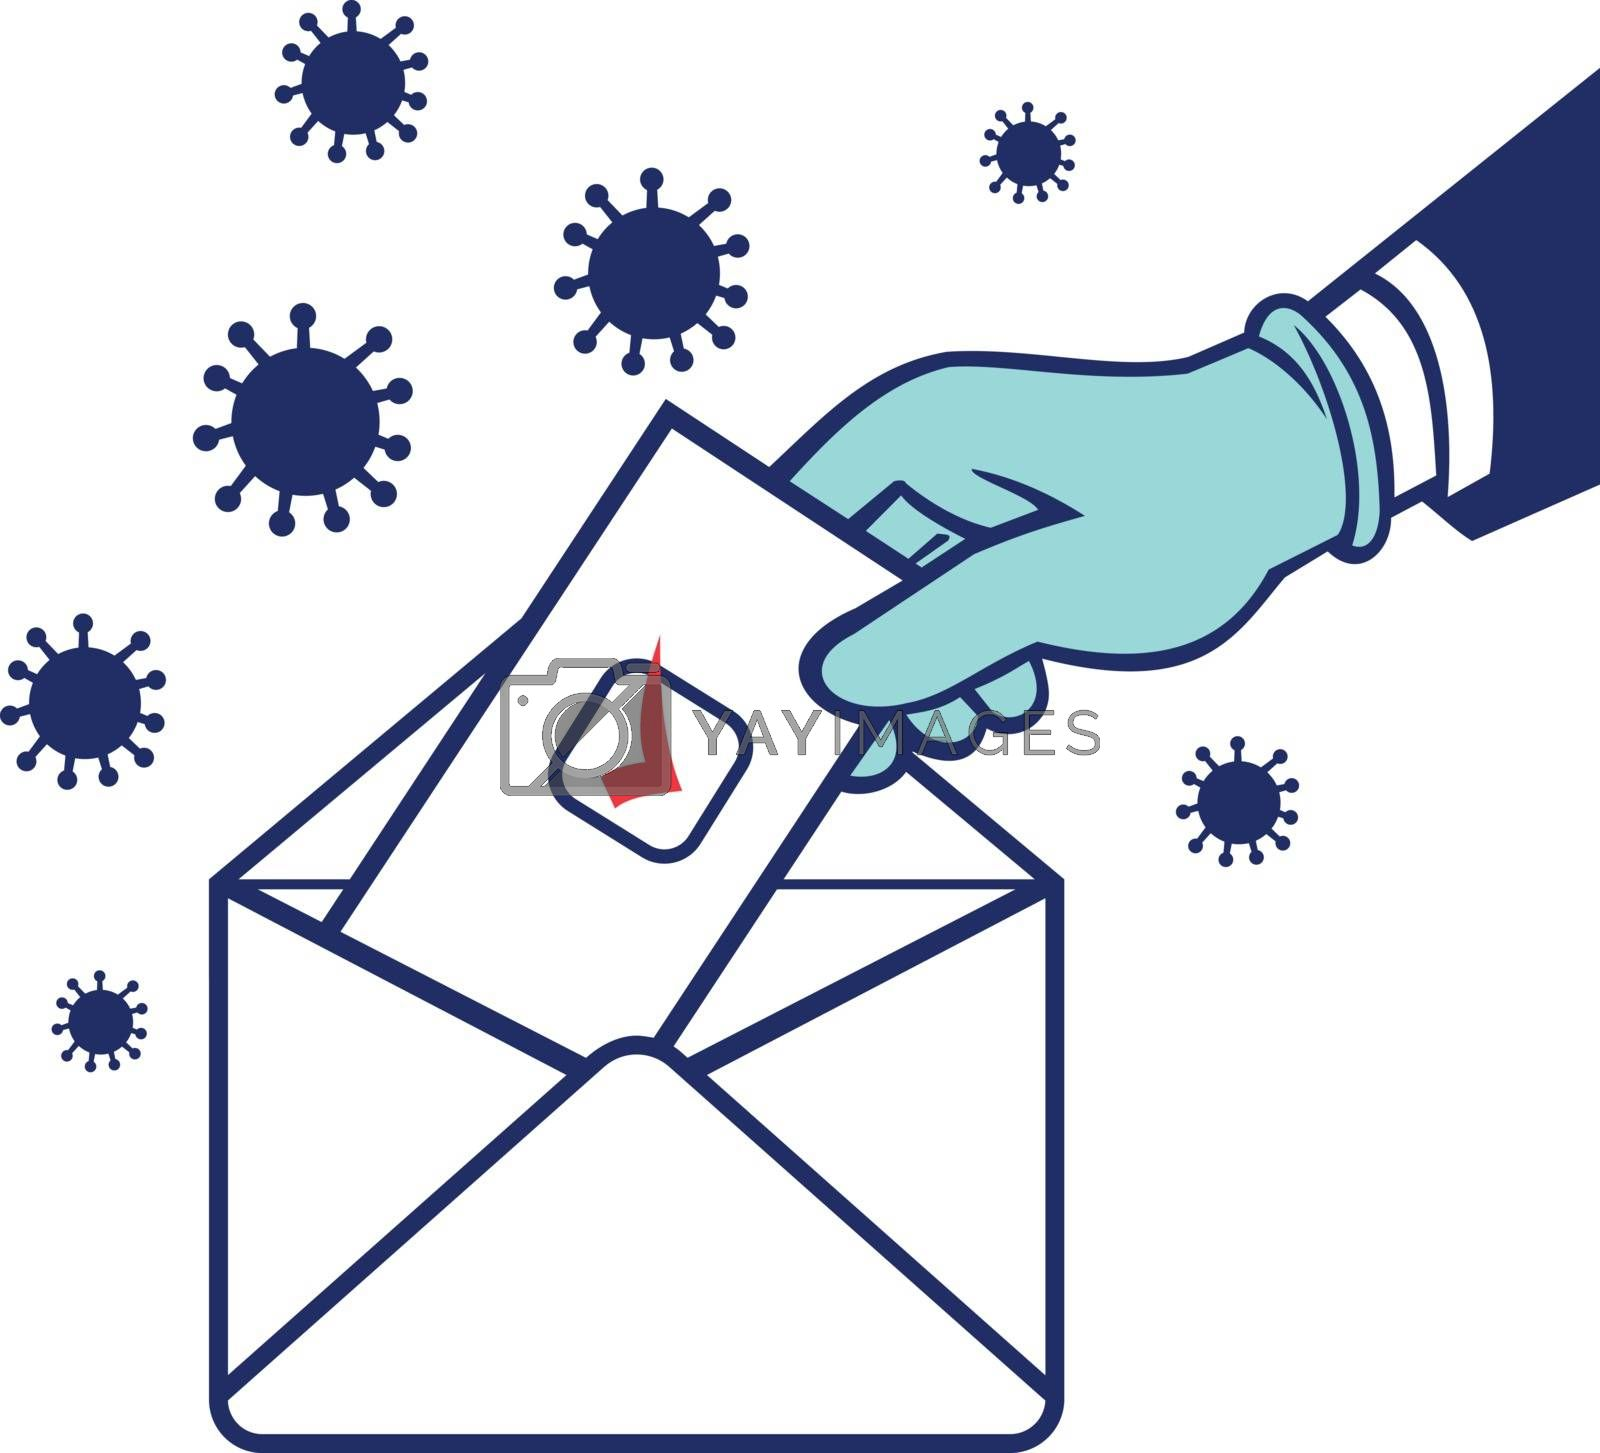 Retro style illustration of an American voter with glove hand voting during pandemic covid-19 coronavirus lockdown putting ballot or vote inside postal ballot envelope in on isolated background.